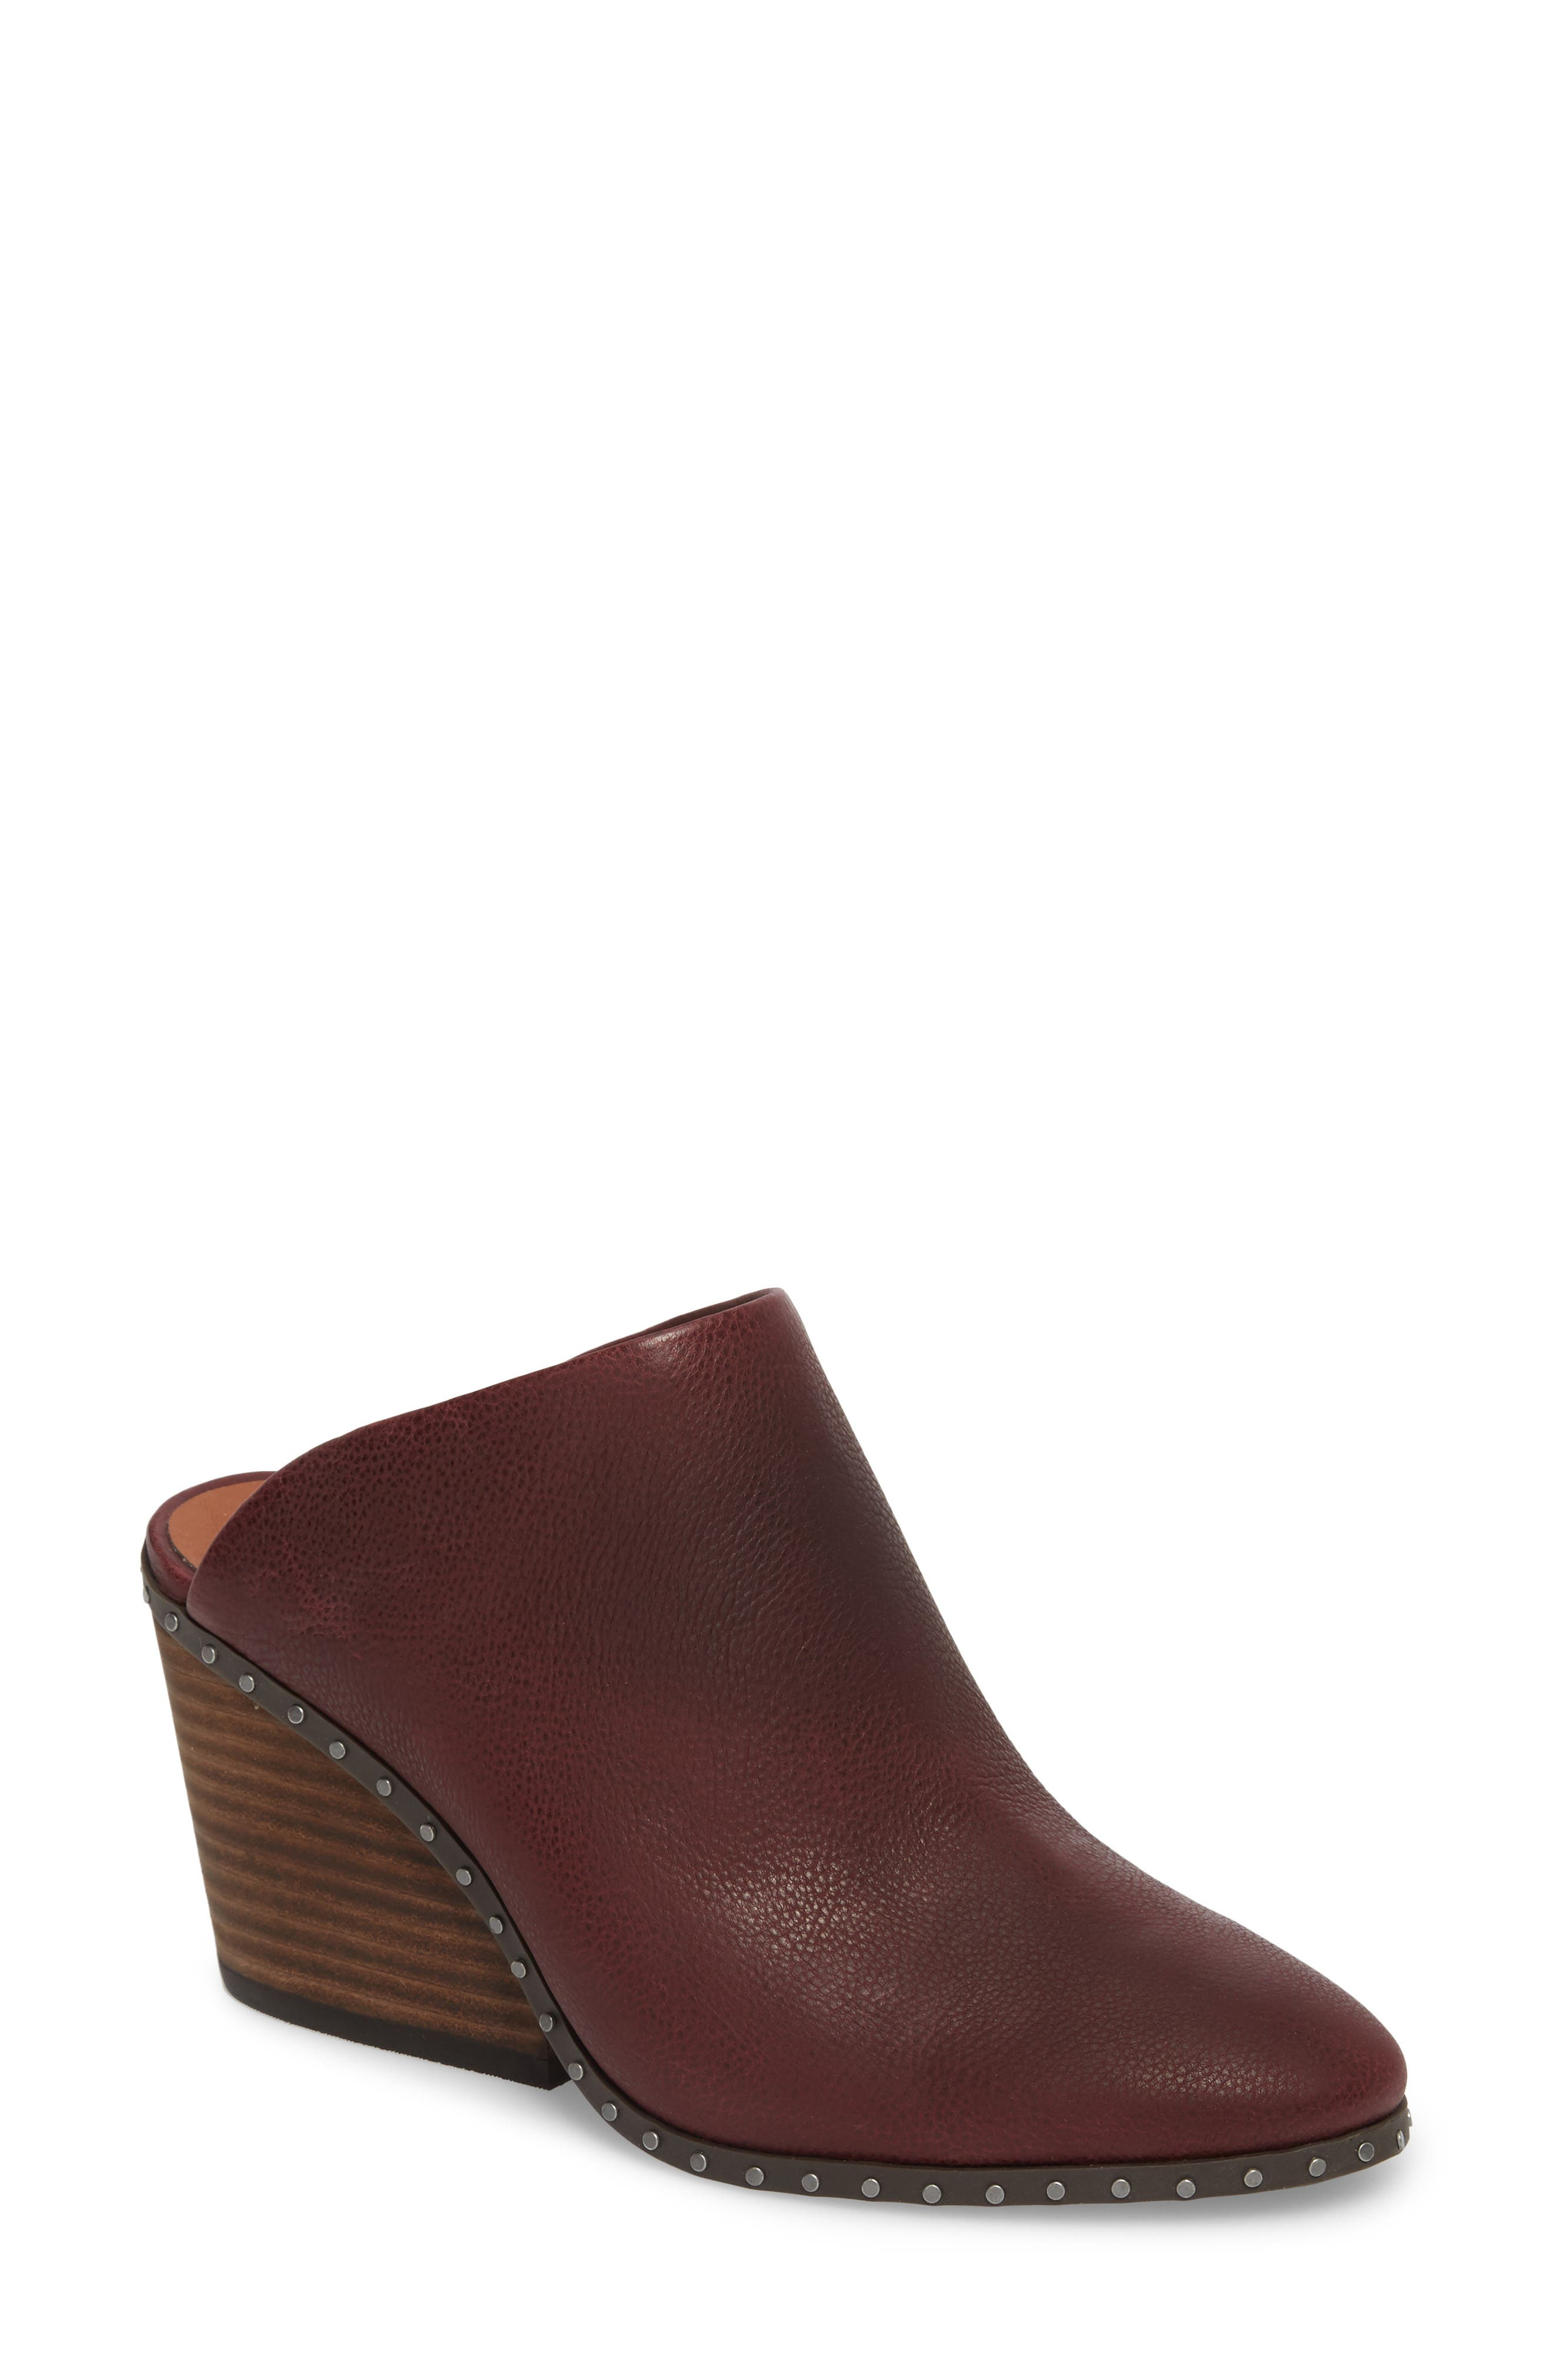 Larsson2 Studded Mule,                         Main,                         color, Tawny Port Leather